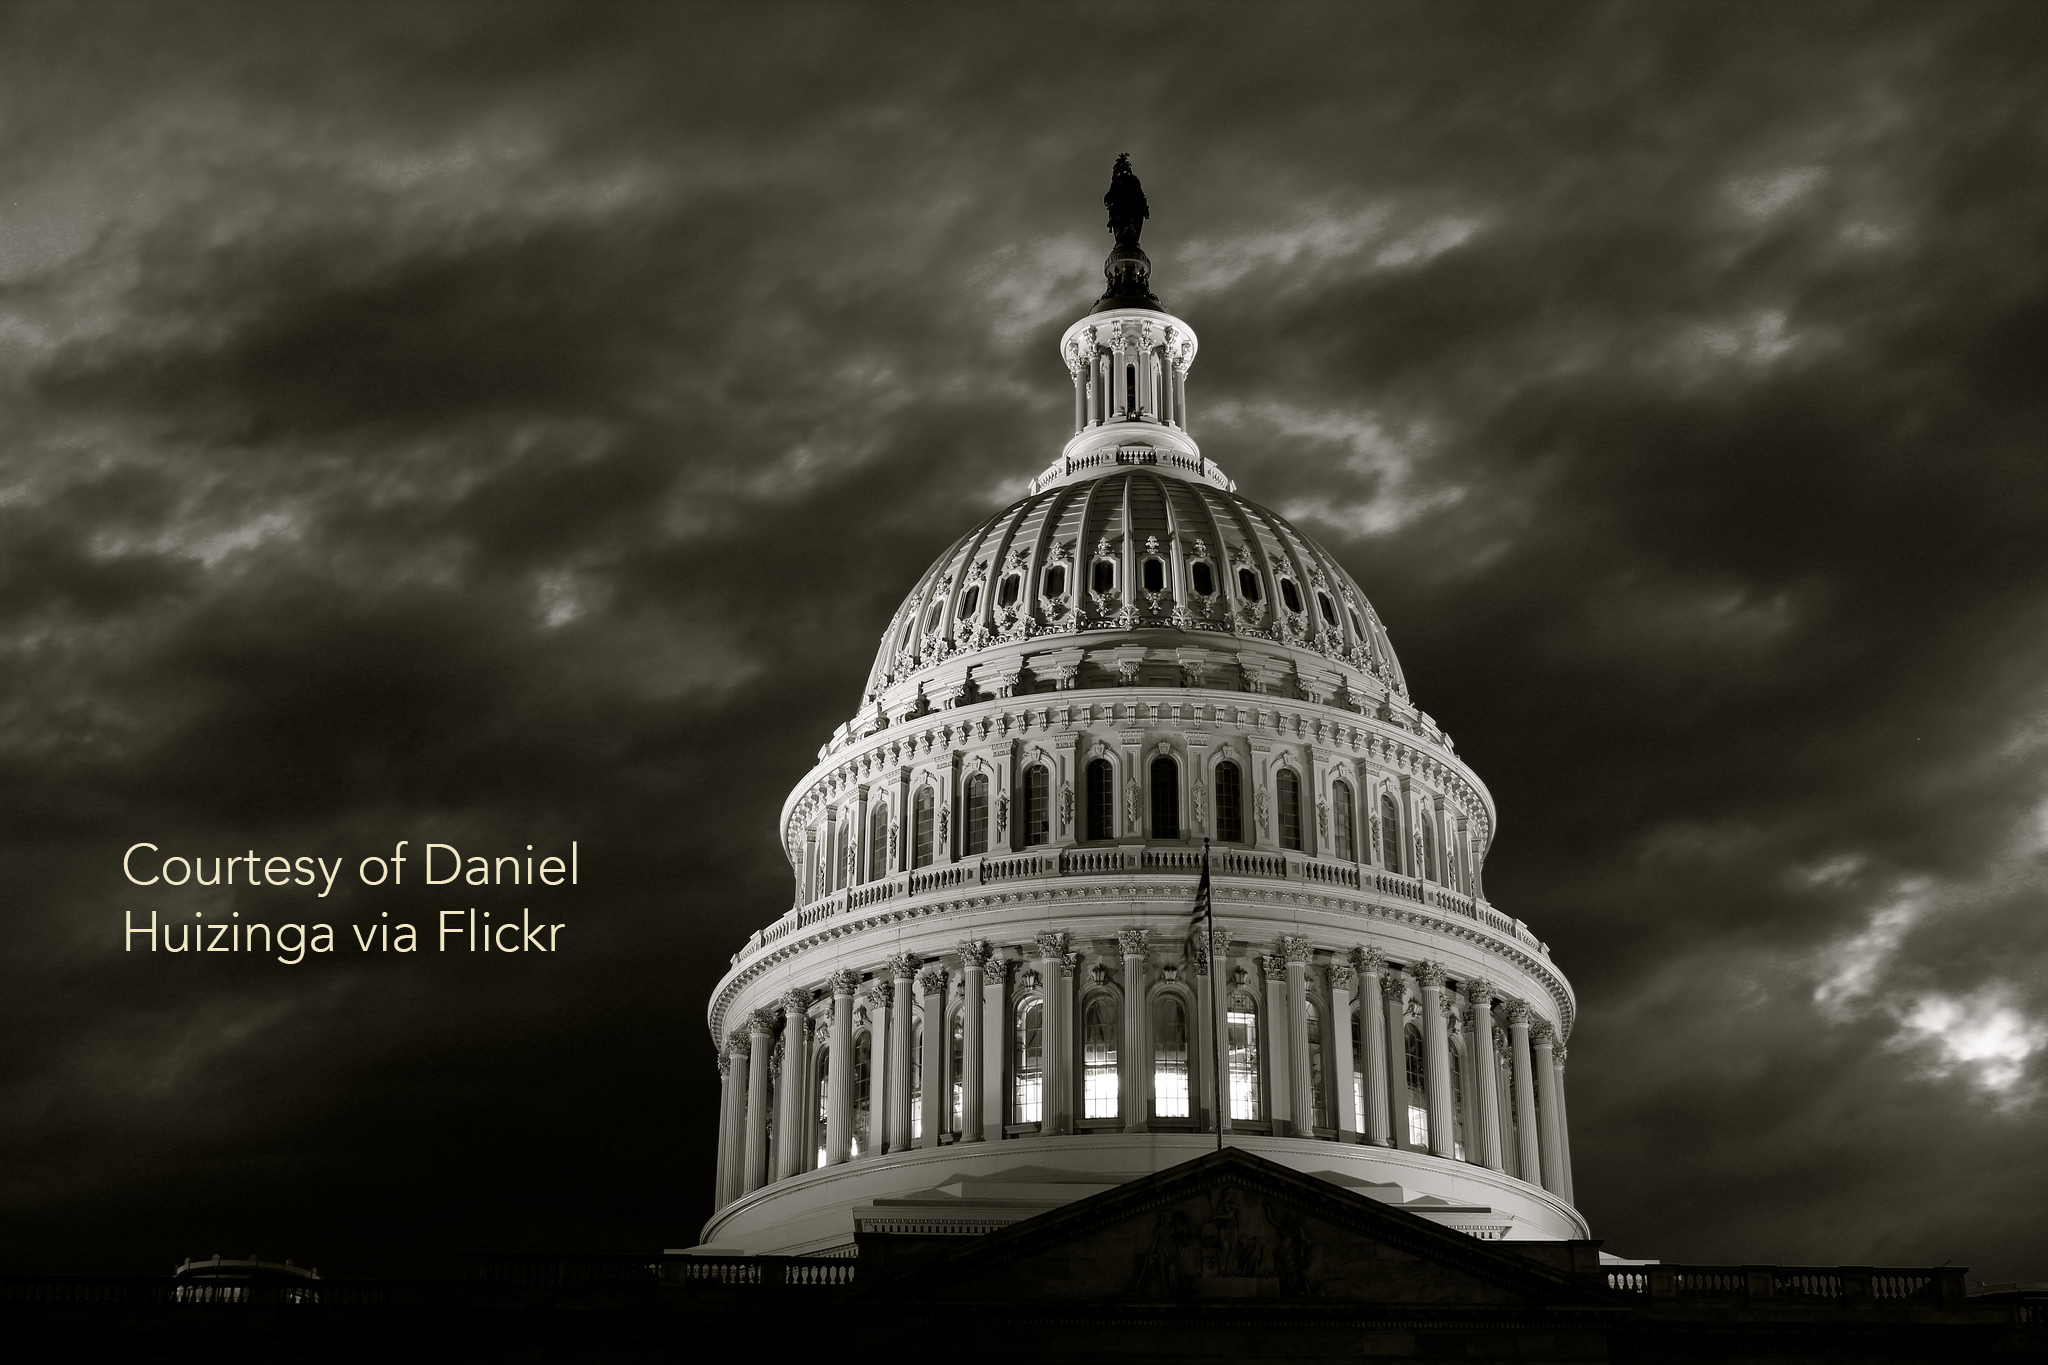 A dark portrayal of the capitol in washington D.C.